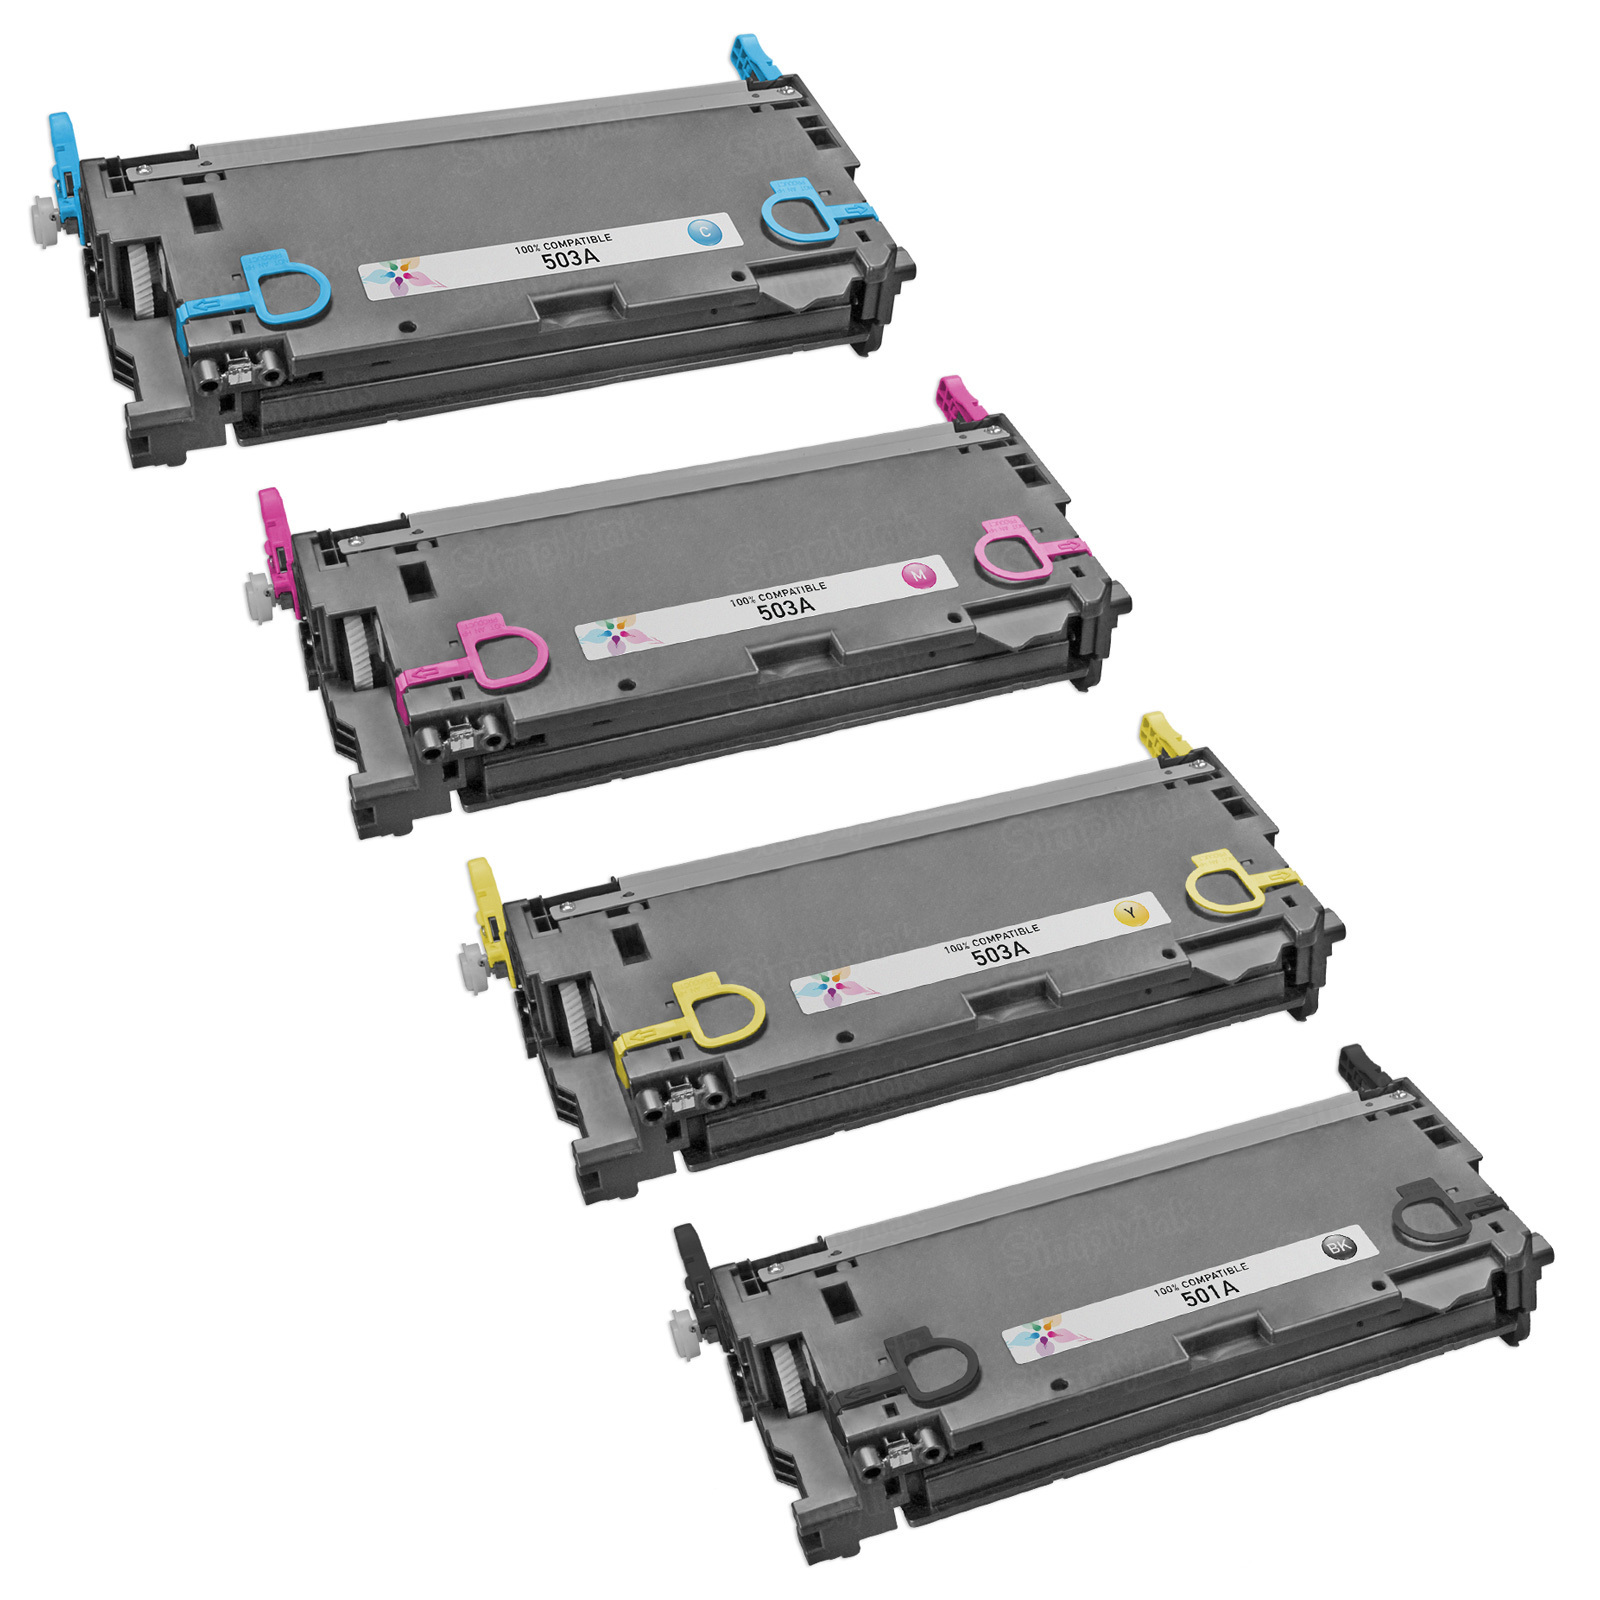 Remanufactured Replacement for HP 503A (Bk, C, M, Y) Set of 4 Toners